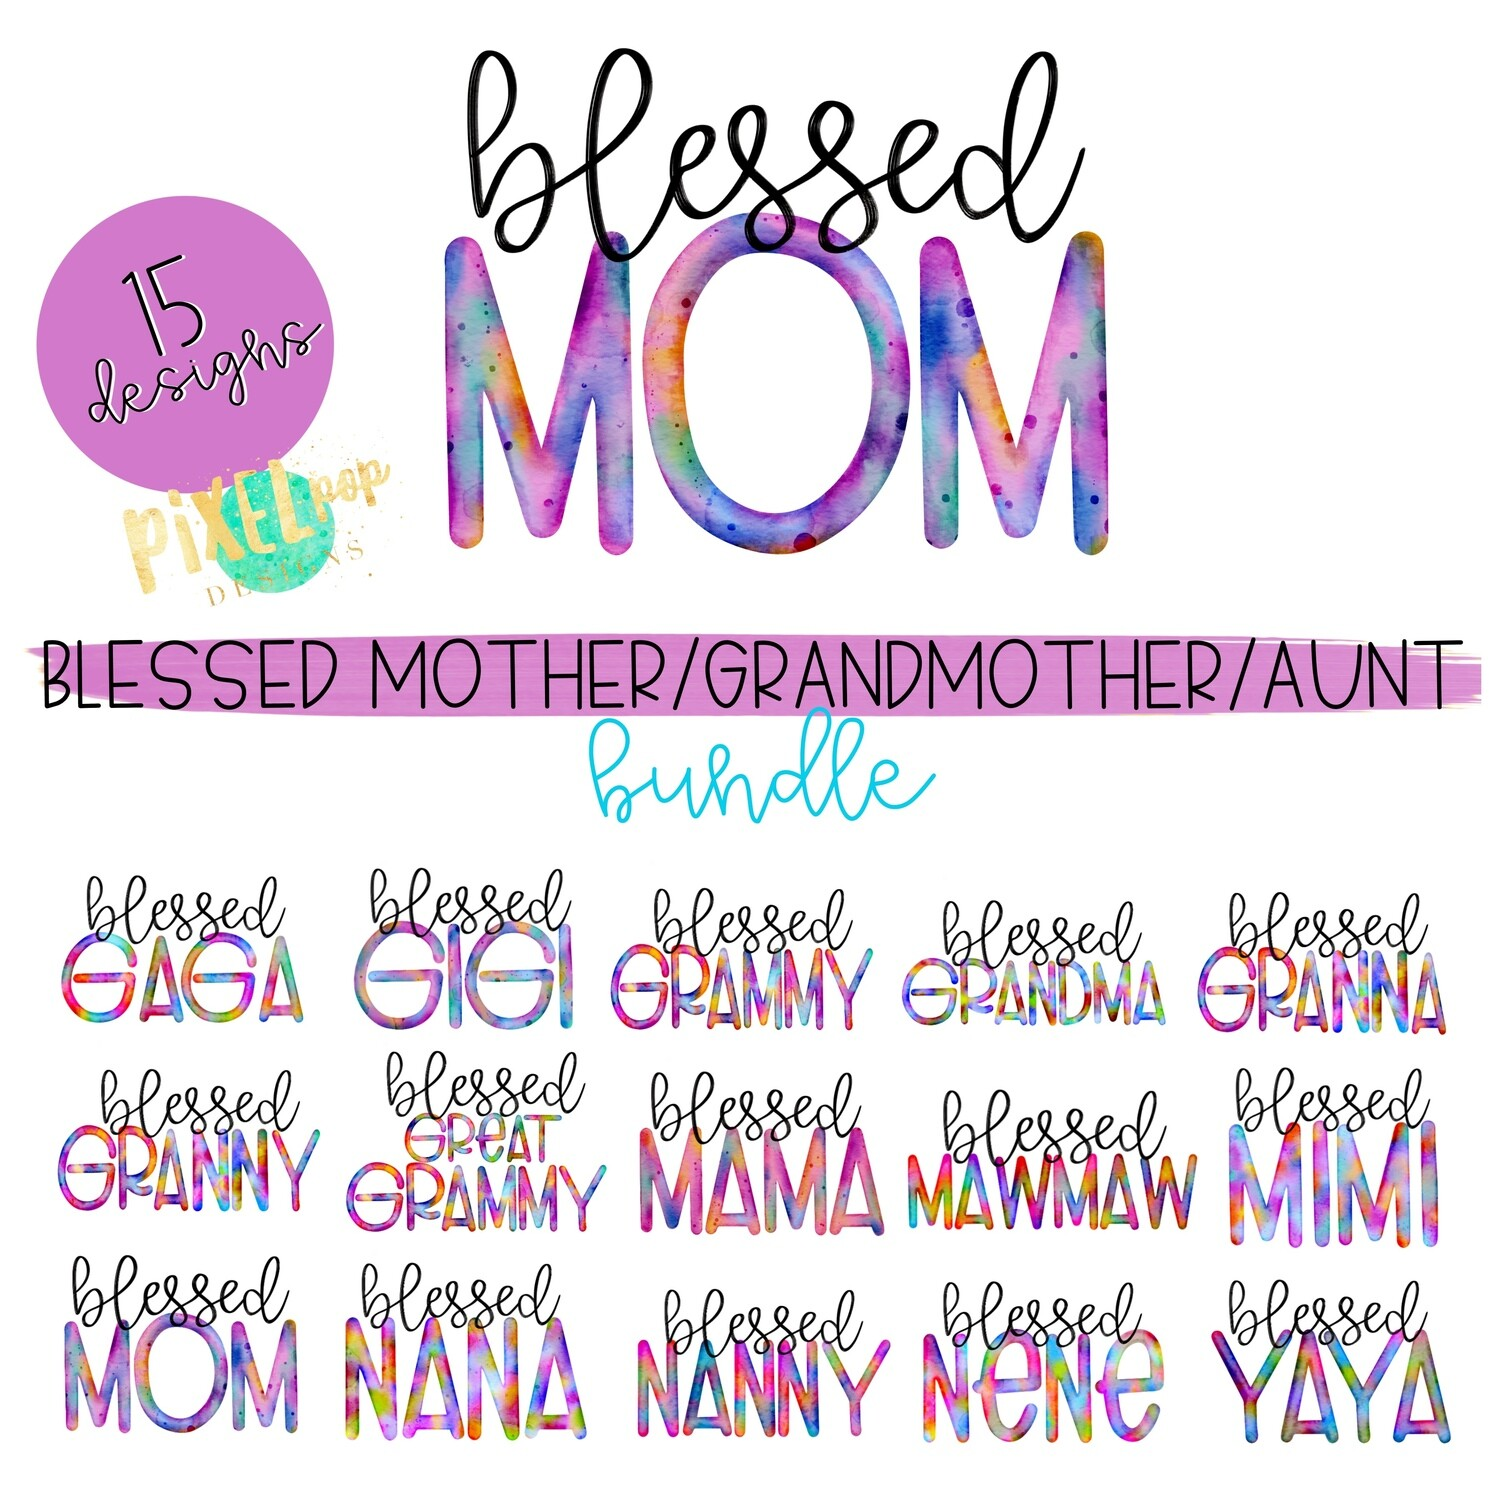 Watercolor Blessed Mother's Day Names Bundle (Set of 15) Sublimation Design PNGs | Hand Drawn PNG | Sublimation PNG | Digital Download | Printable Art | Clip Art